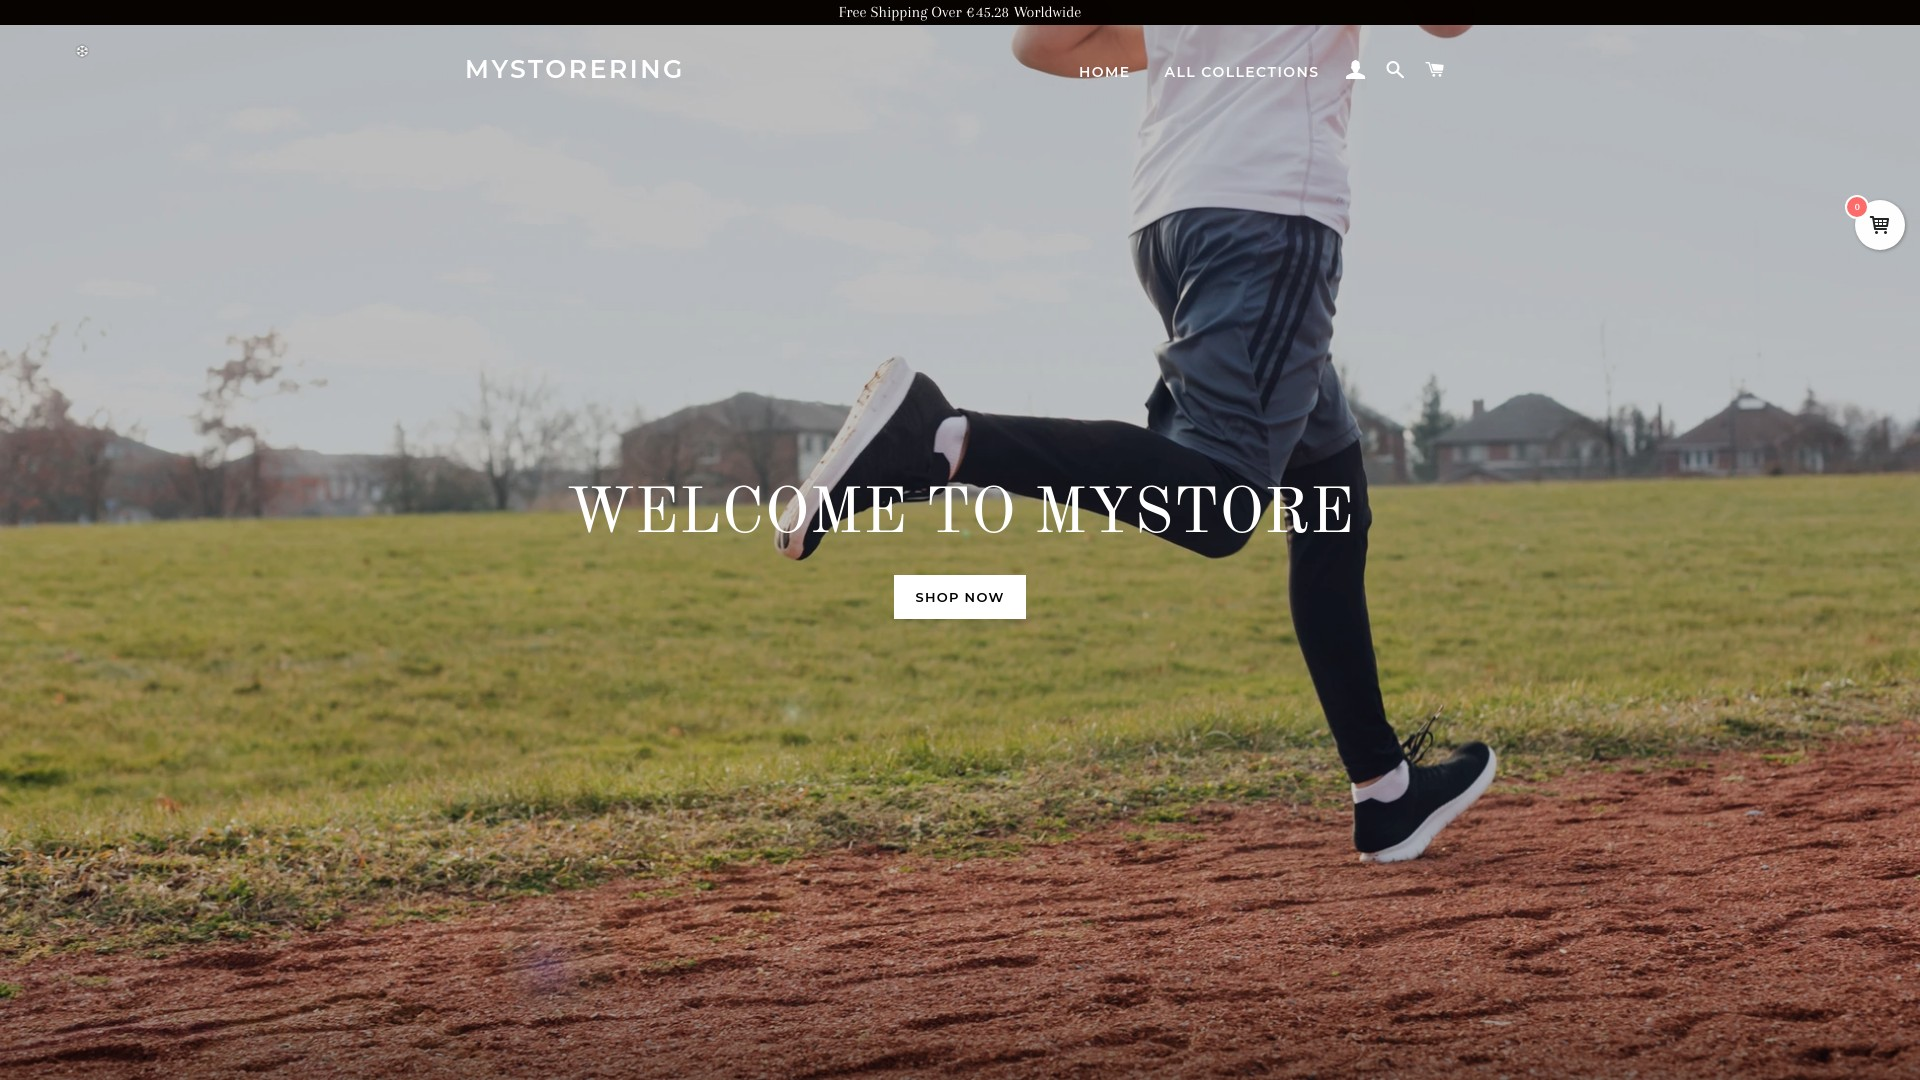 Is Mystore1 a Scam? See the Review of the Online Store